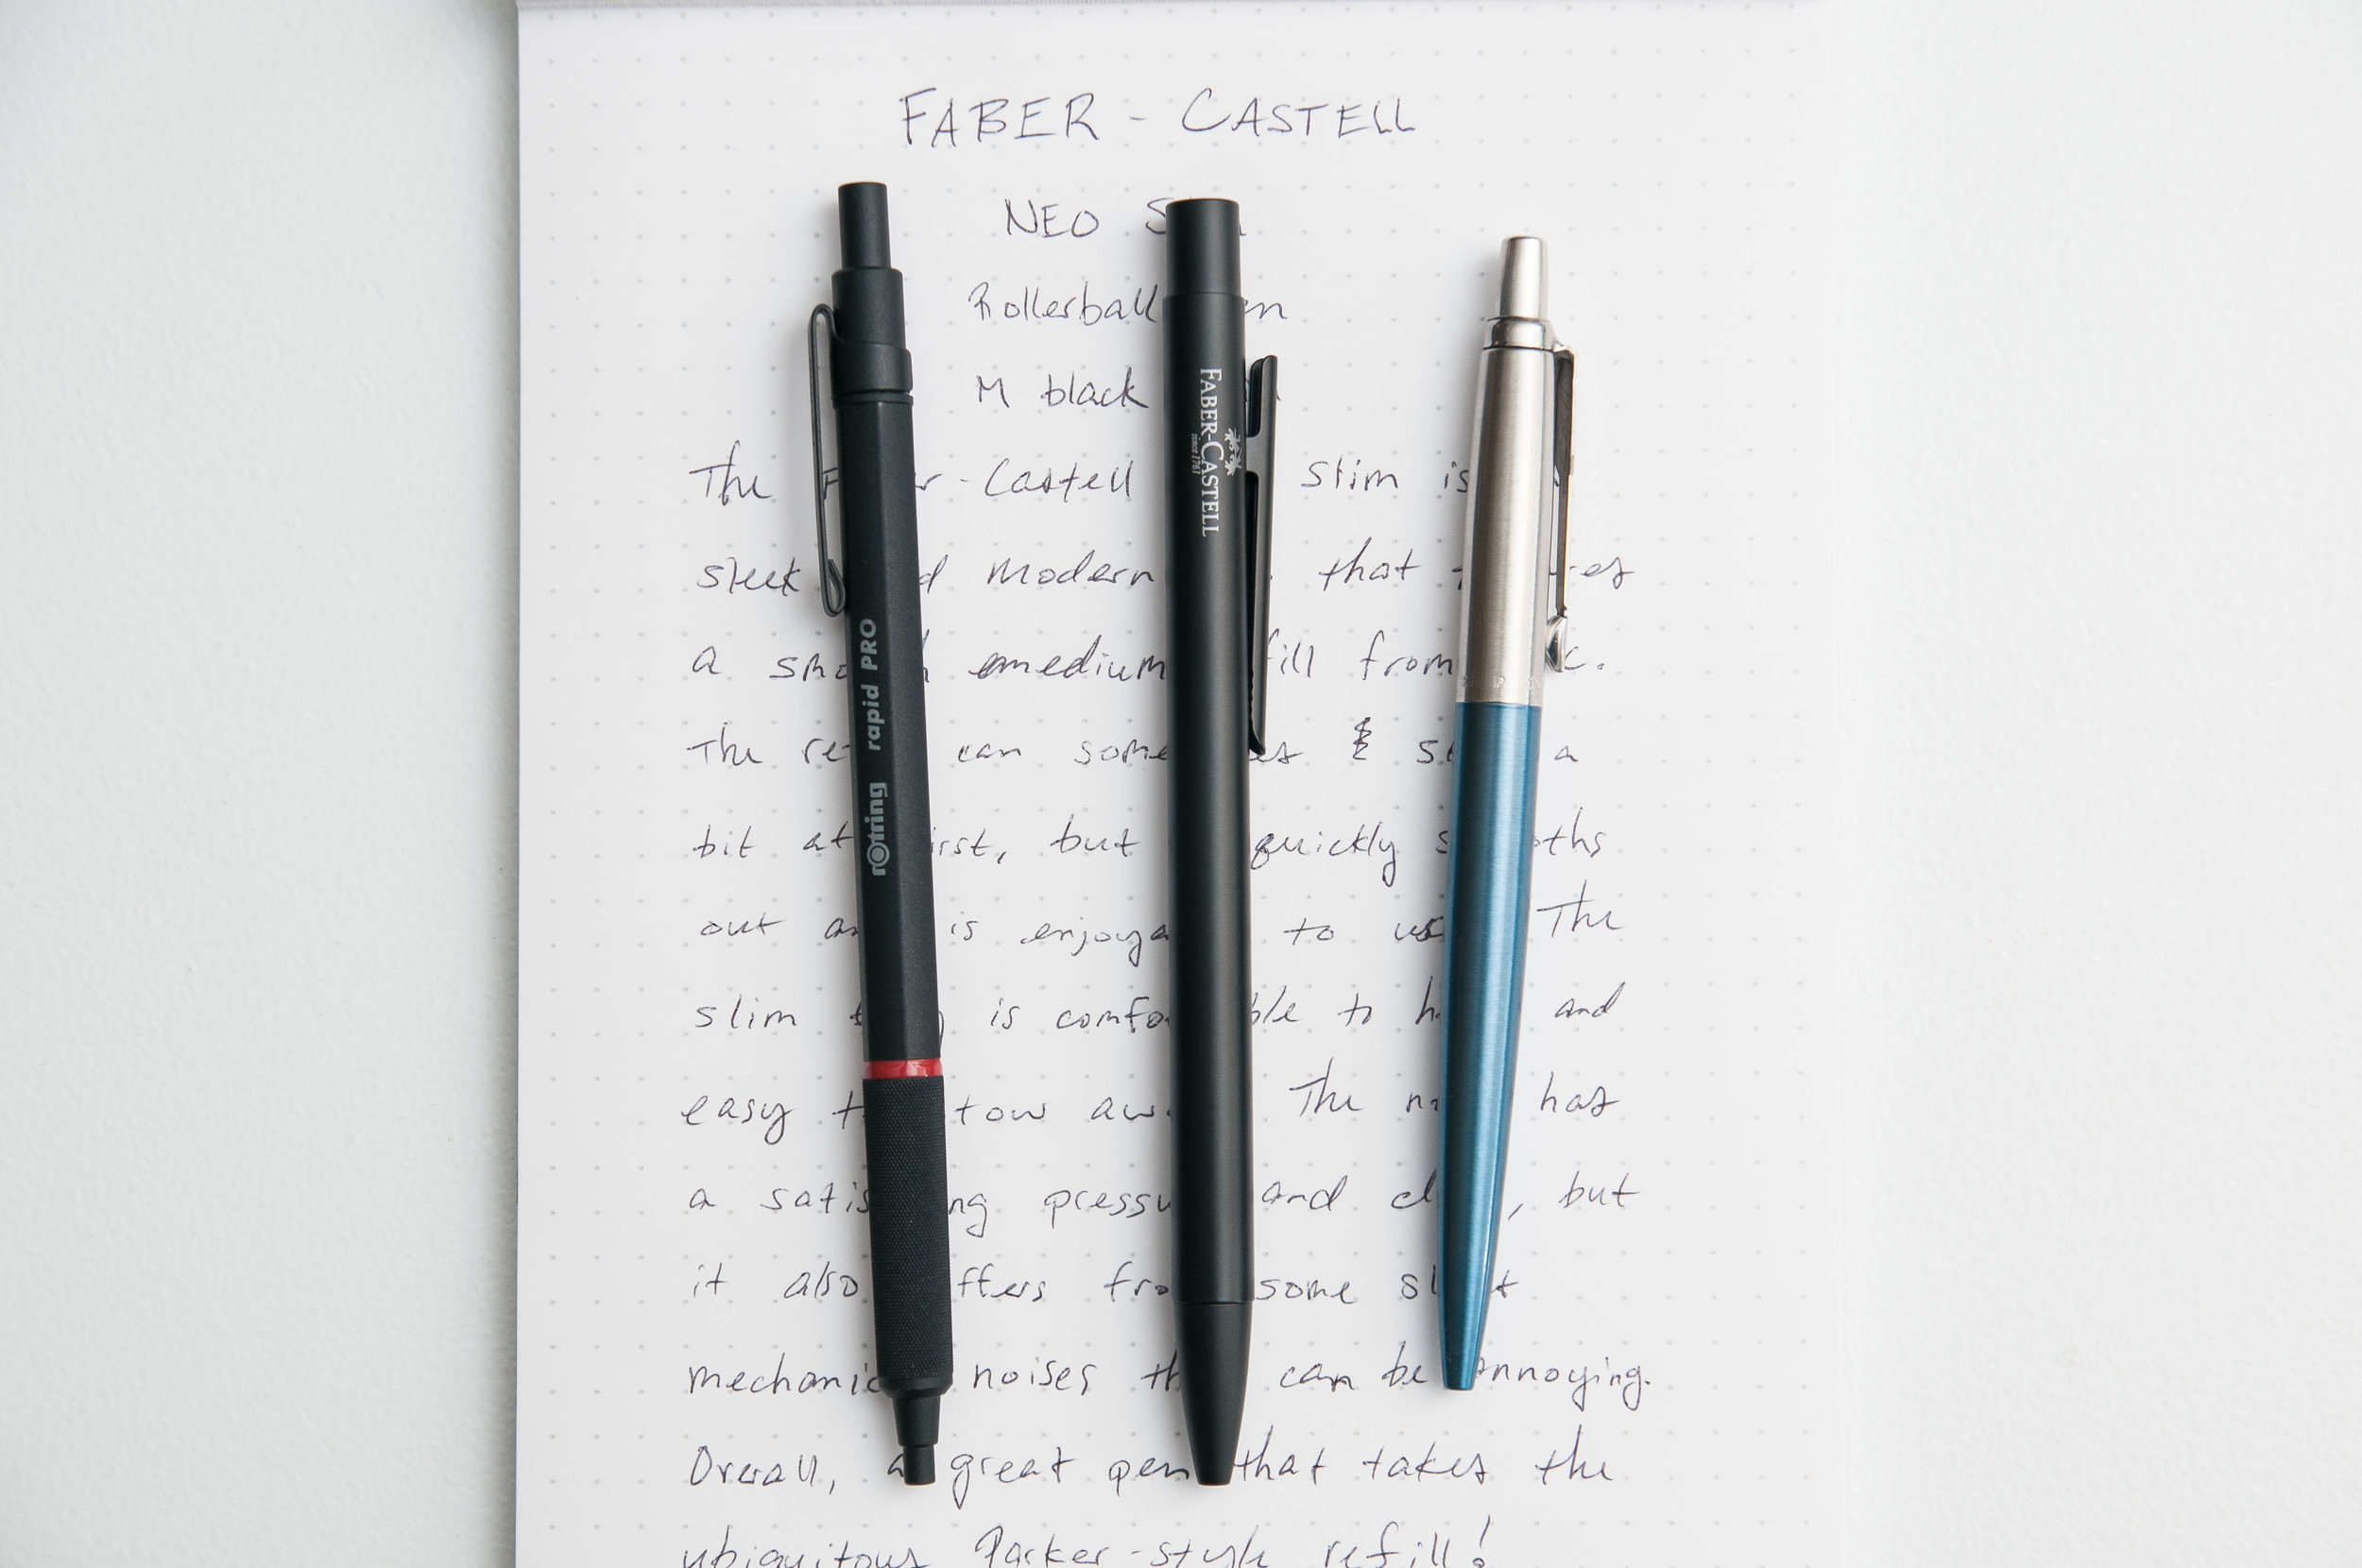 Faber-Castell NEO Slim Rollerball